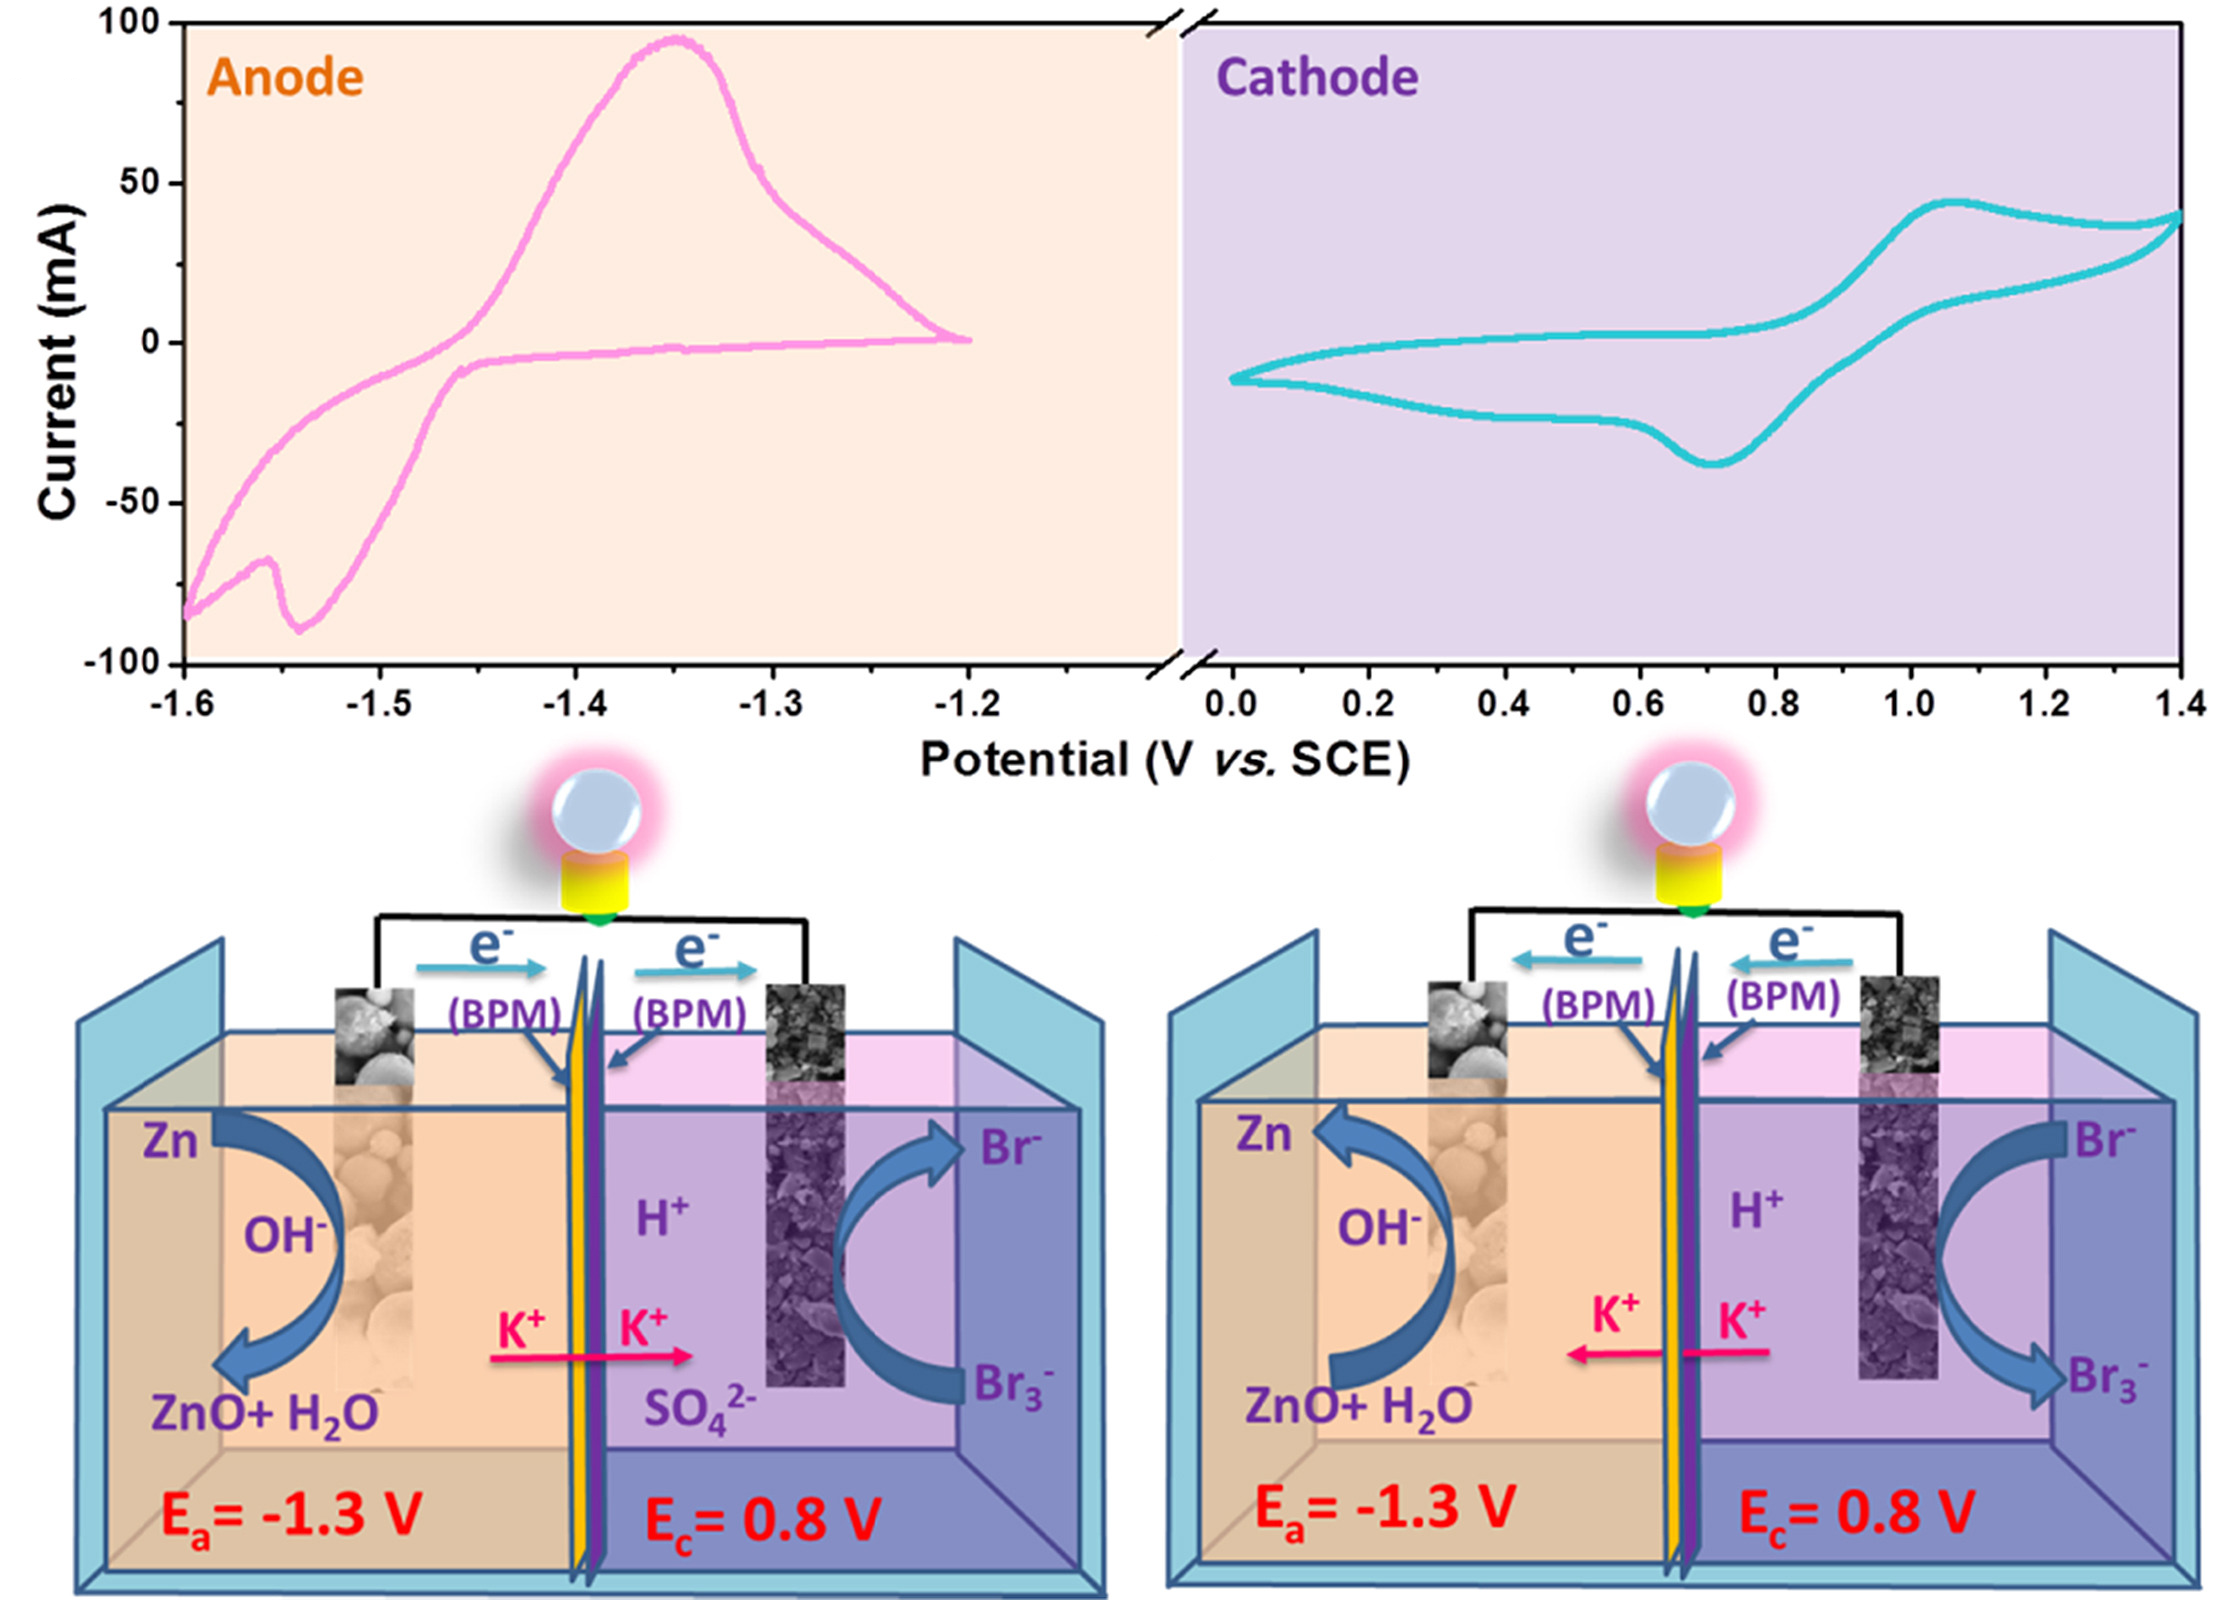 PUBLICATION ON ENERGY STORAGE MATERIALS BY FENG YU